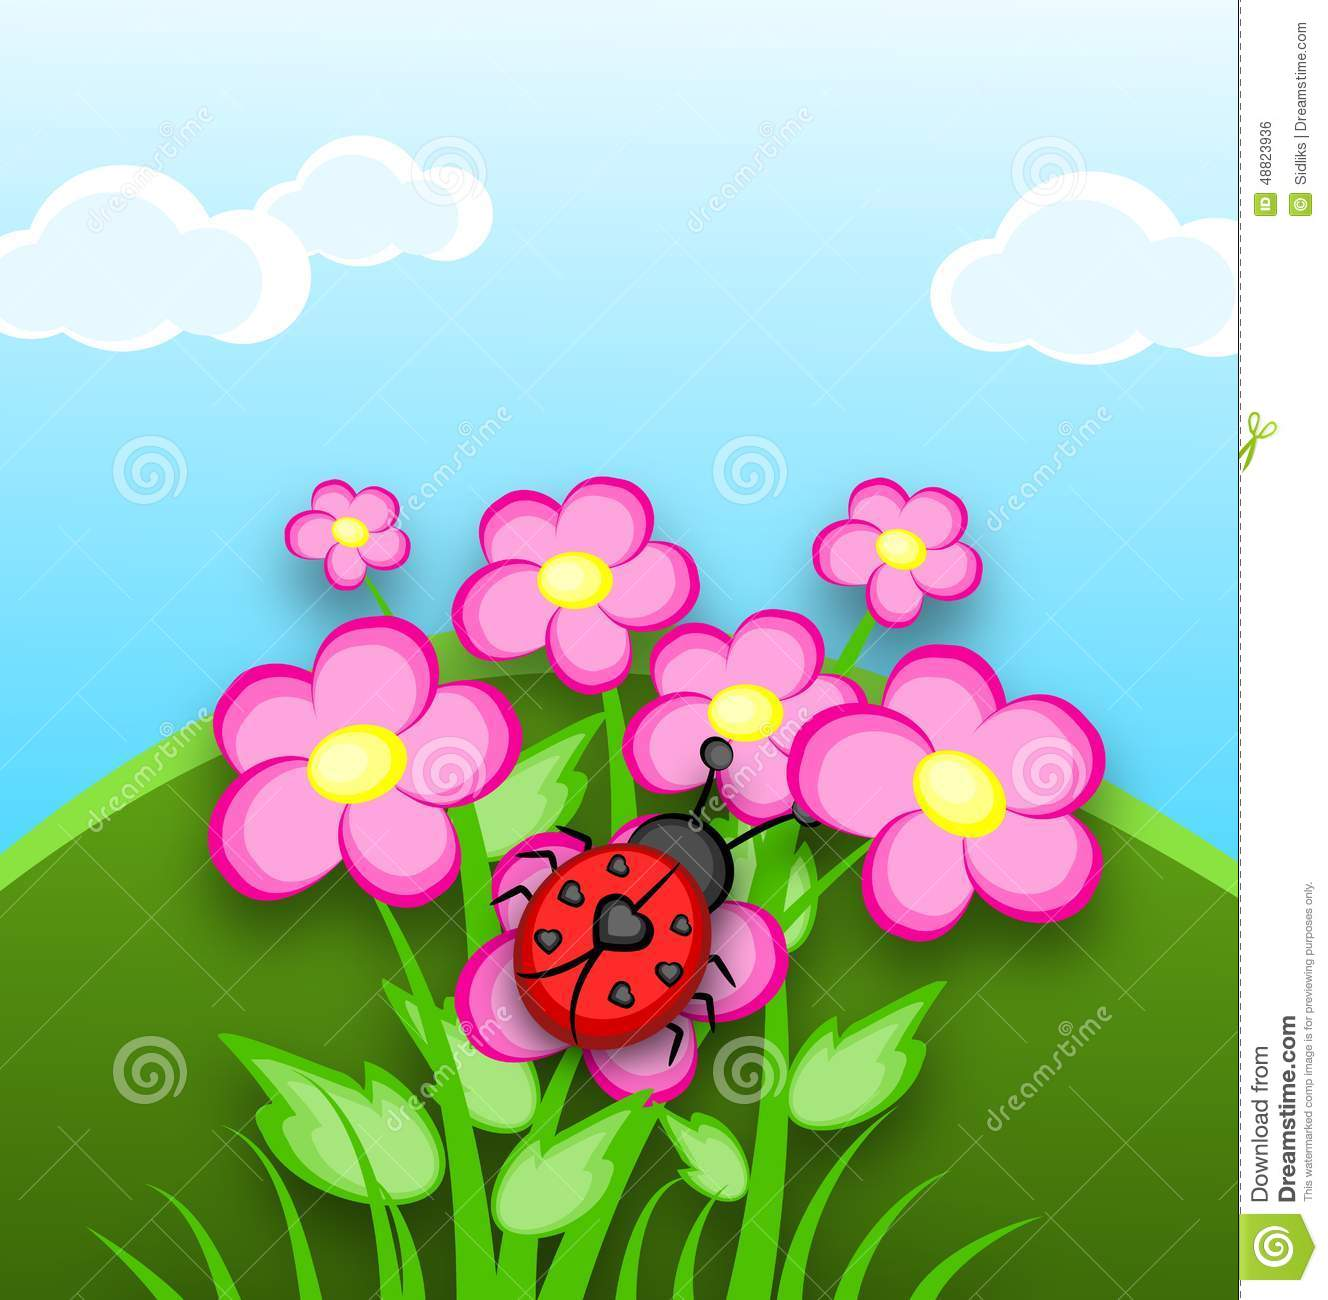 Cartoon ladybug with seven black heart on back sittion on pink flowers ...